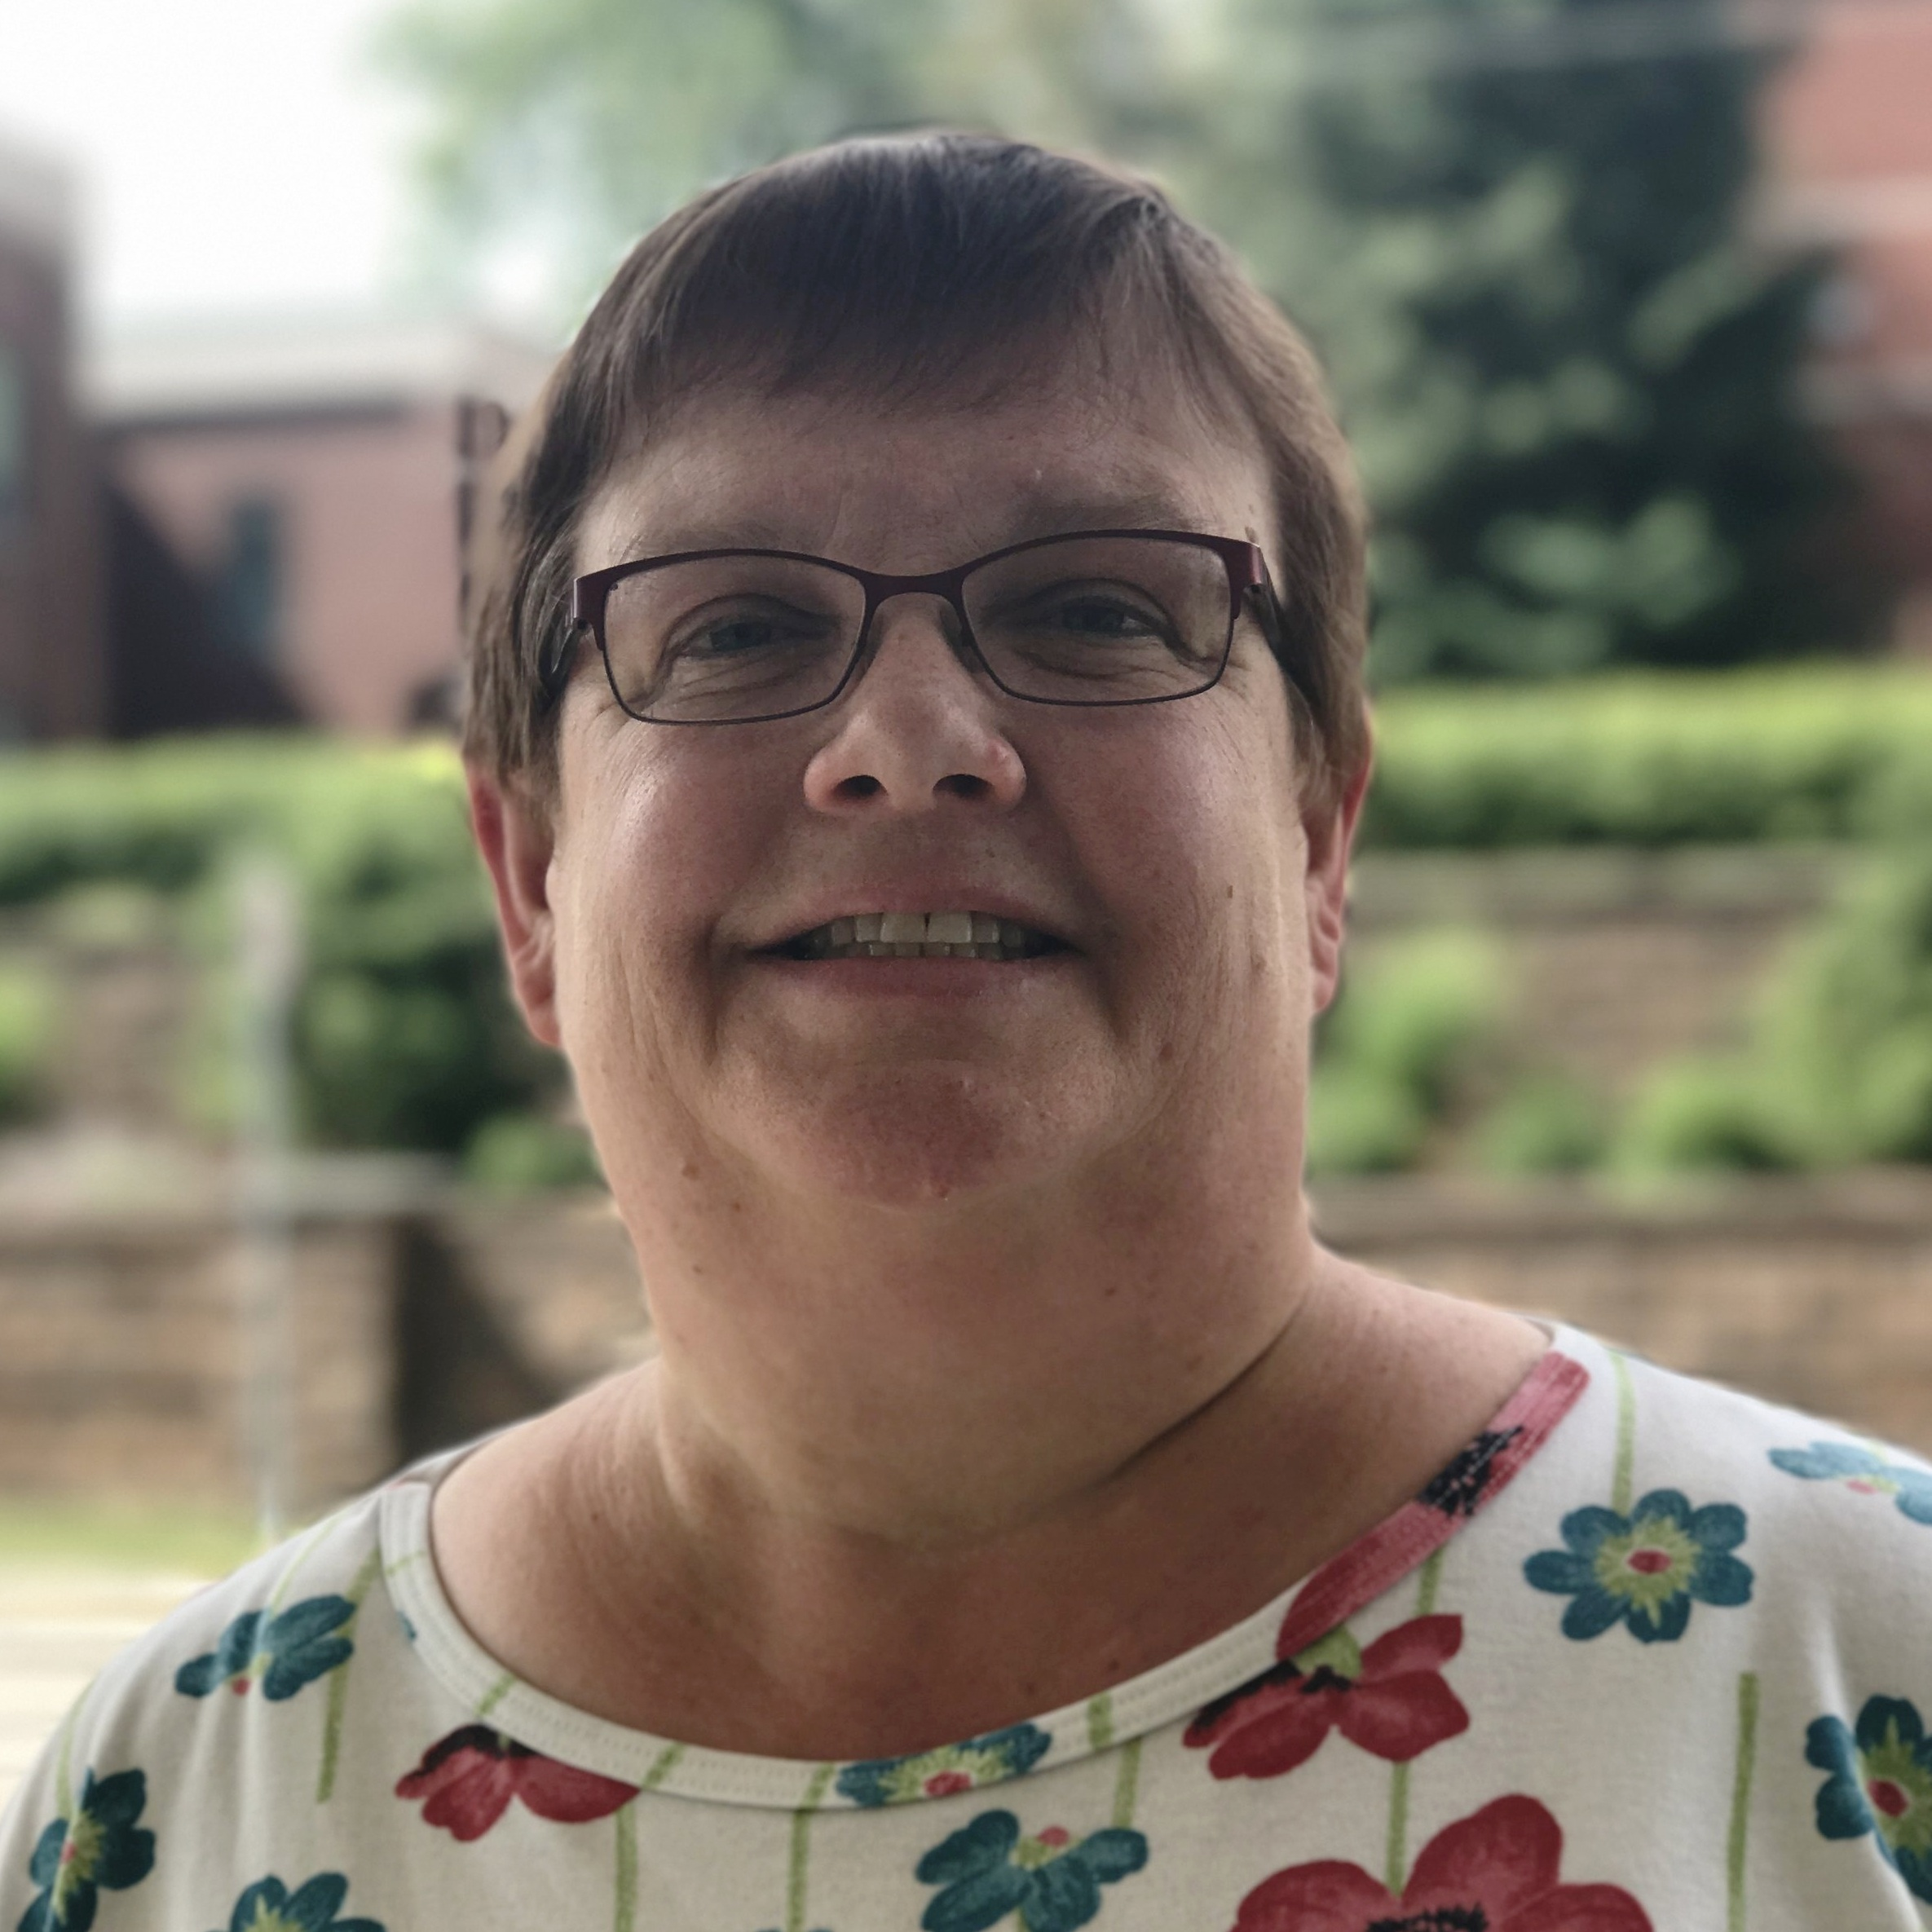 MARIE SMITH  is the Bookkeeper for the ministry, taking care of behind the scenes financial details to make sure ministry can run smoothly.